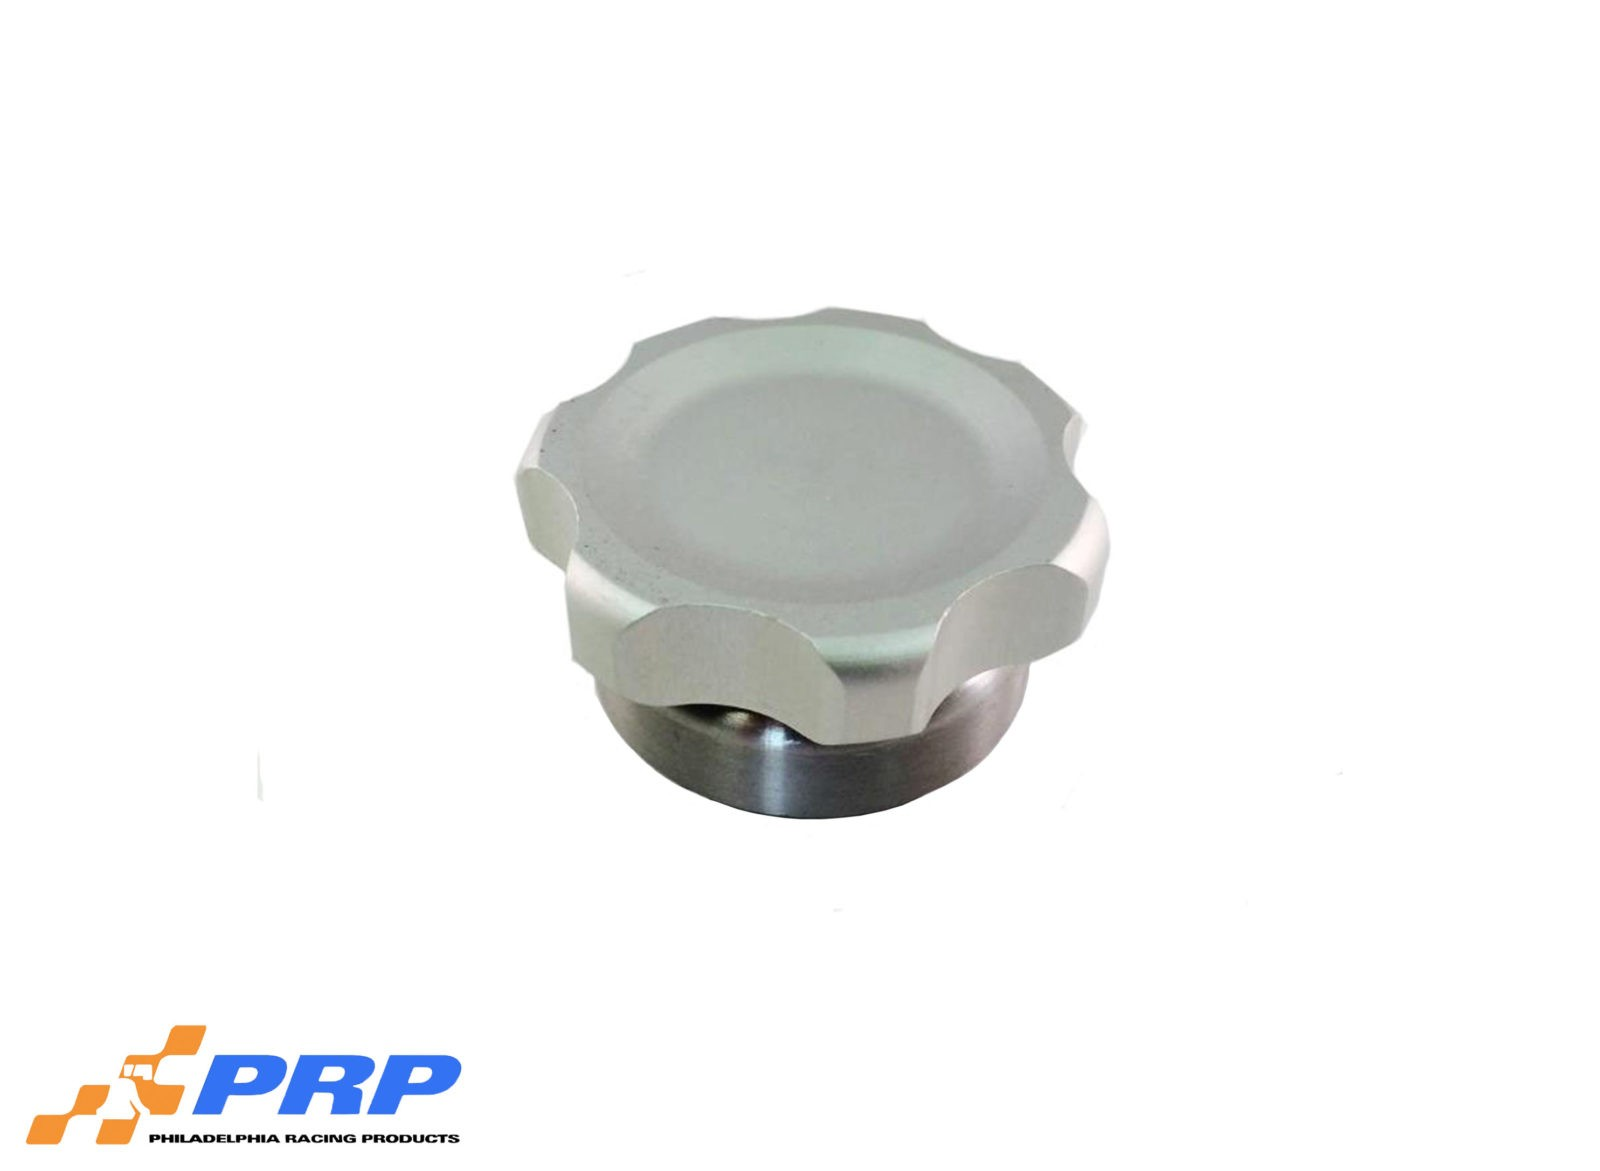 Clear Anodized Small Billet Filler Cap Kit made by PRP Racing Products